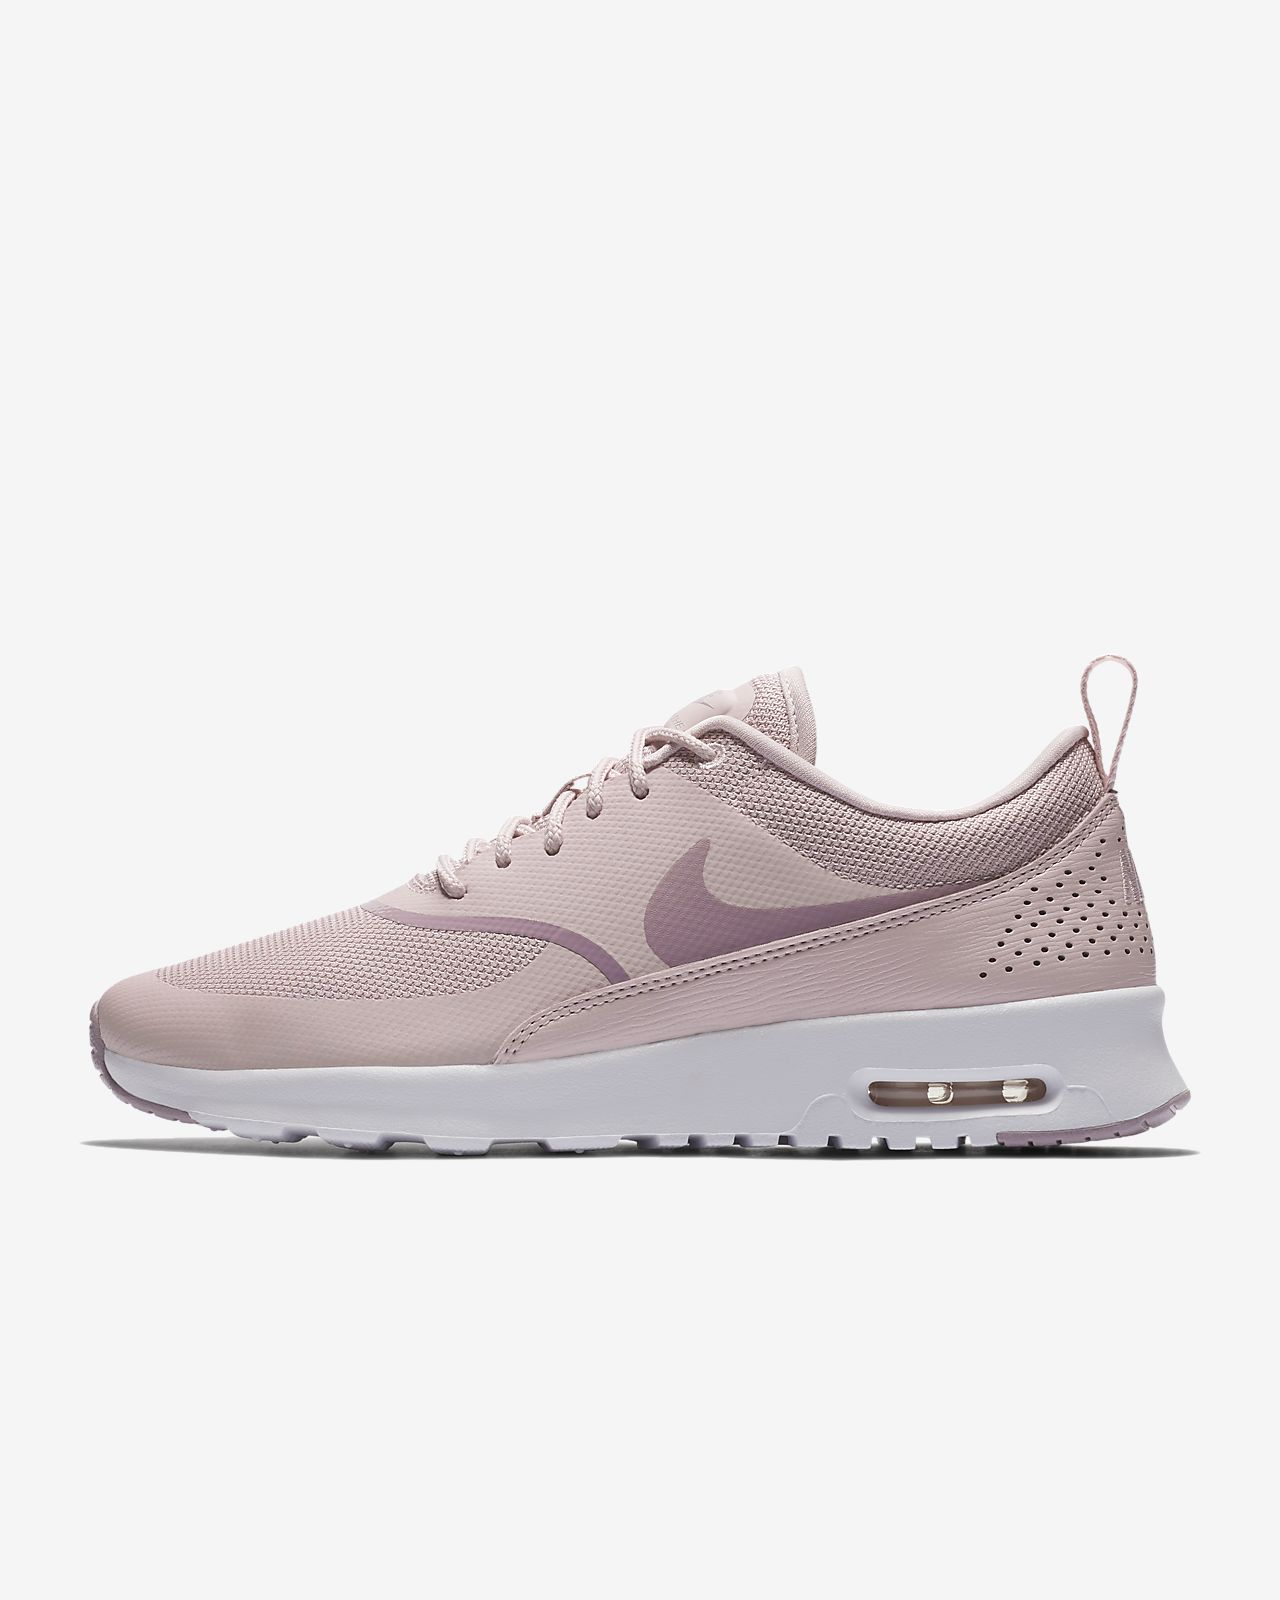 Femme Casual Chaussures Roses Nike Internationalist wyq4tP4I8x